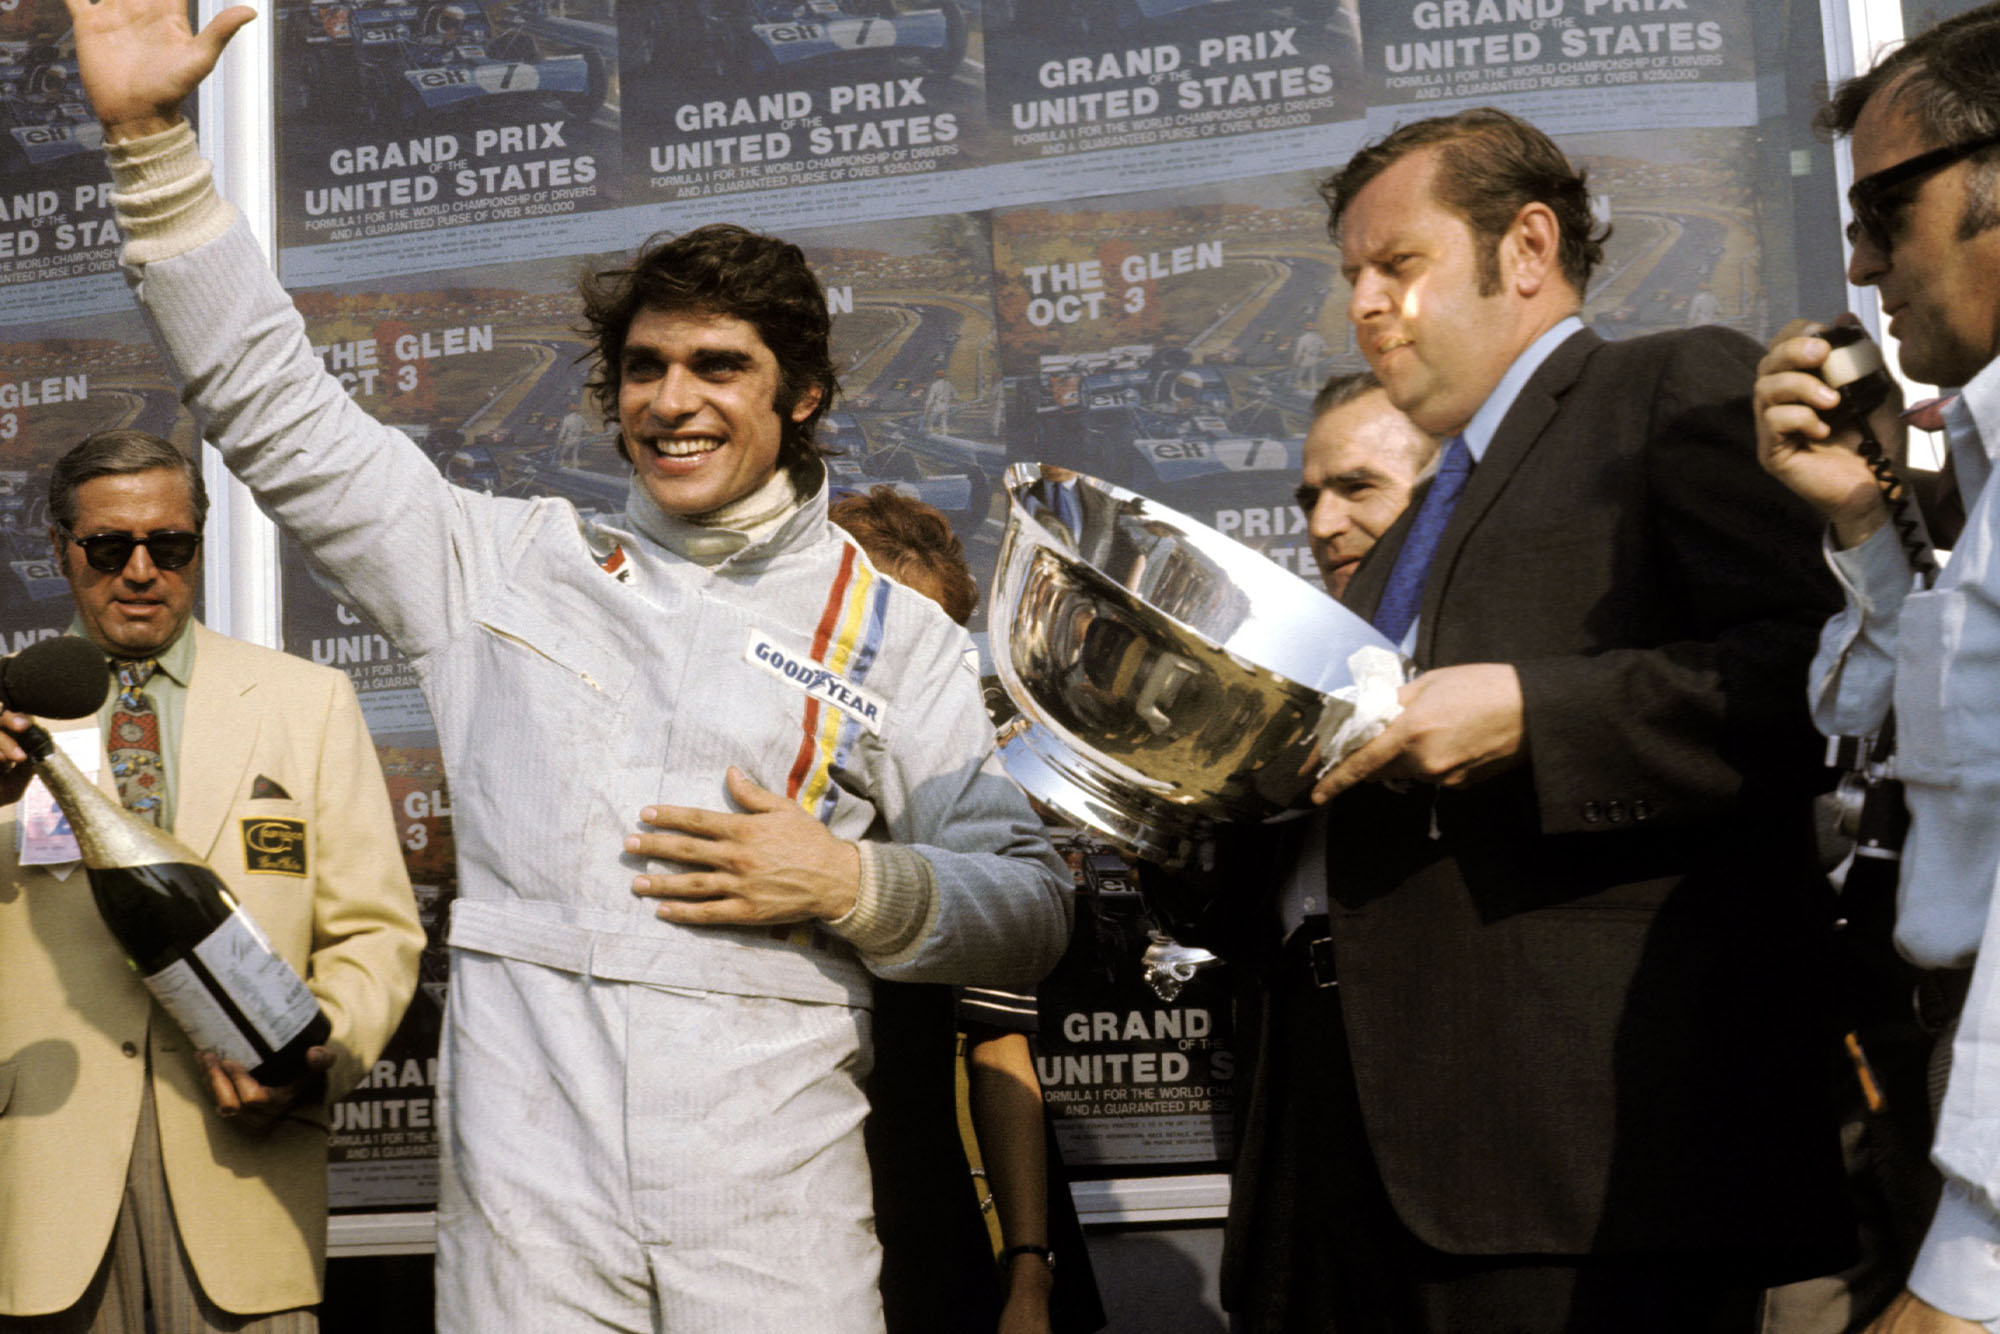 Francois Cevert celebrates his first win on the podium at the 1971 United States Grand Prix.